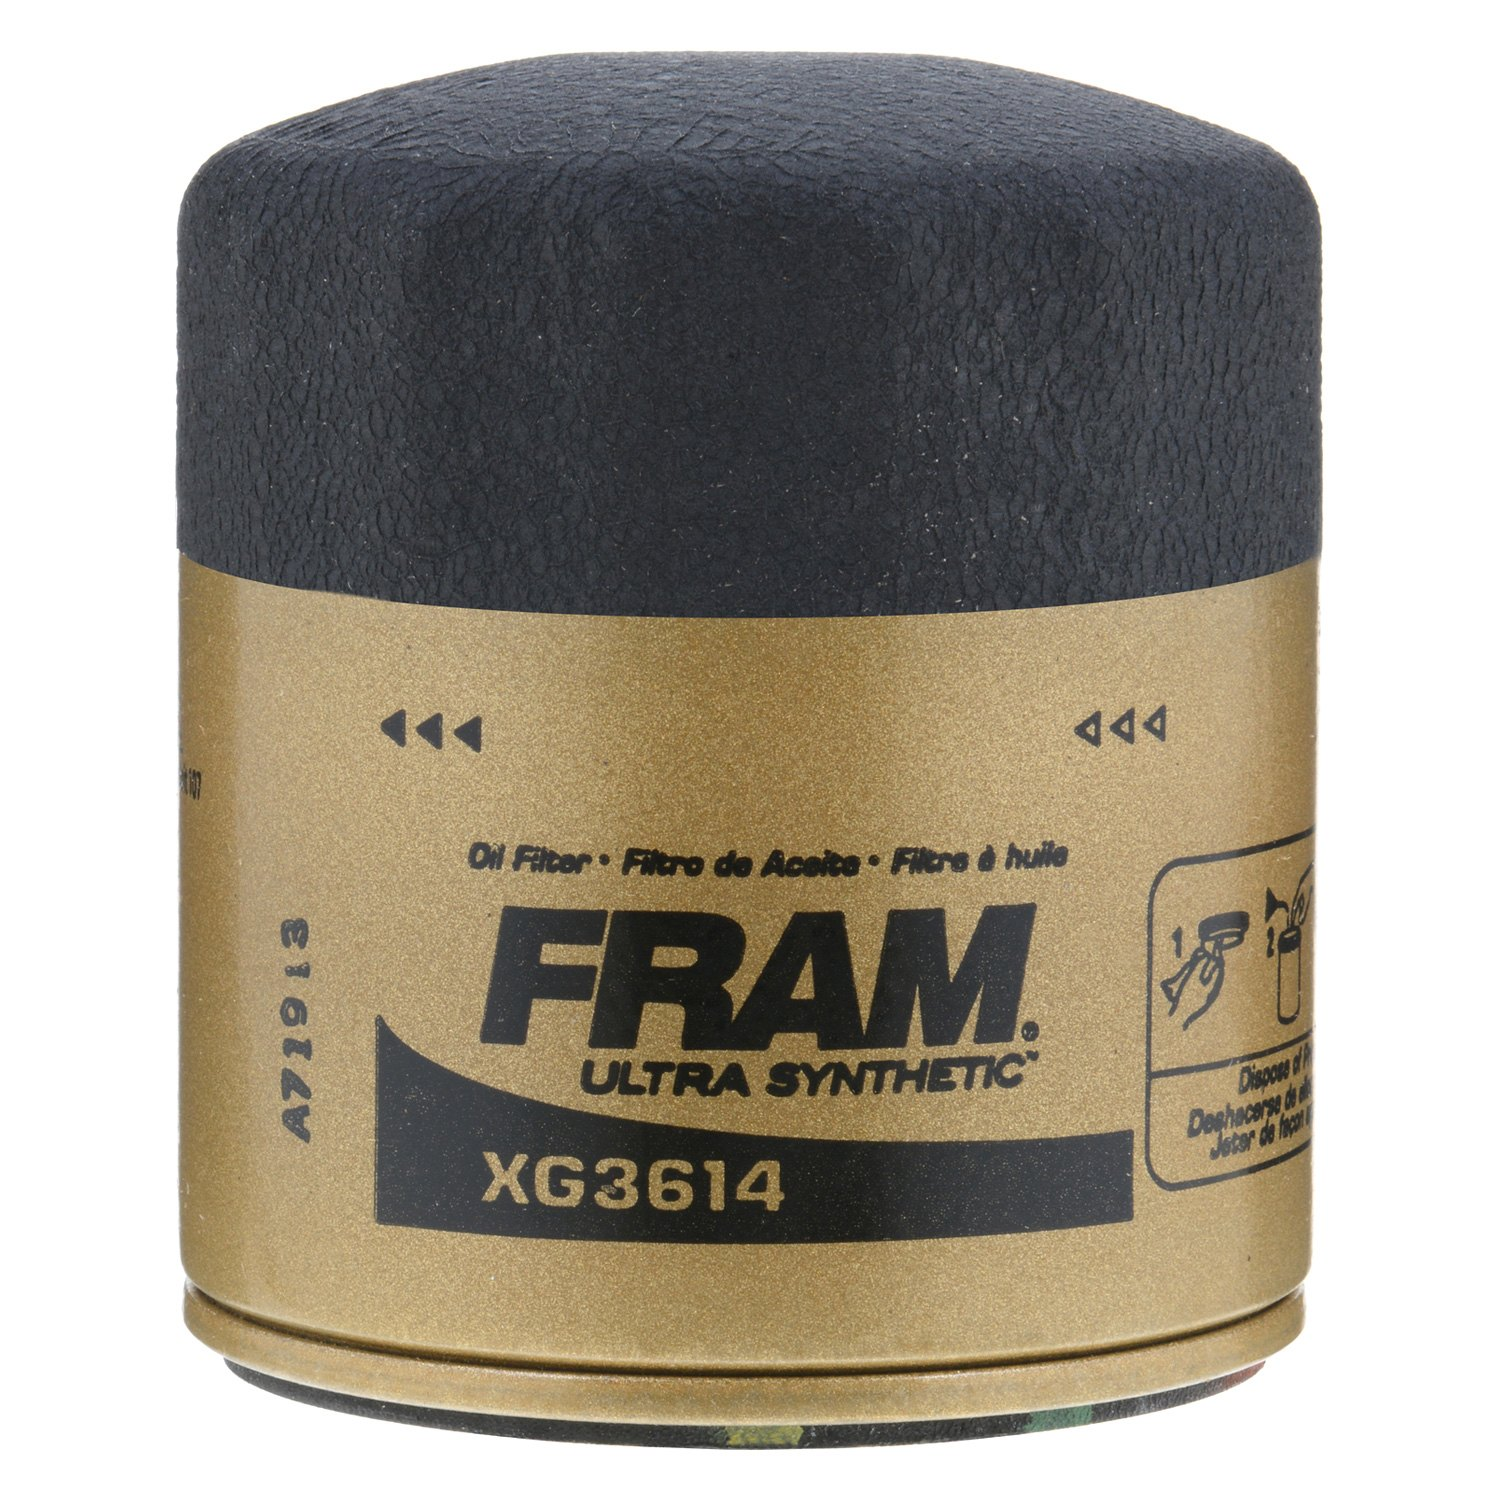 Fram Xg3614 Ultra Synthetic Oil Filter 2012 Ford Fiesta Fuel